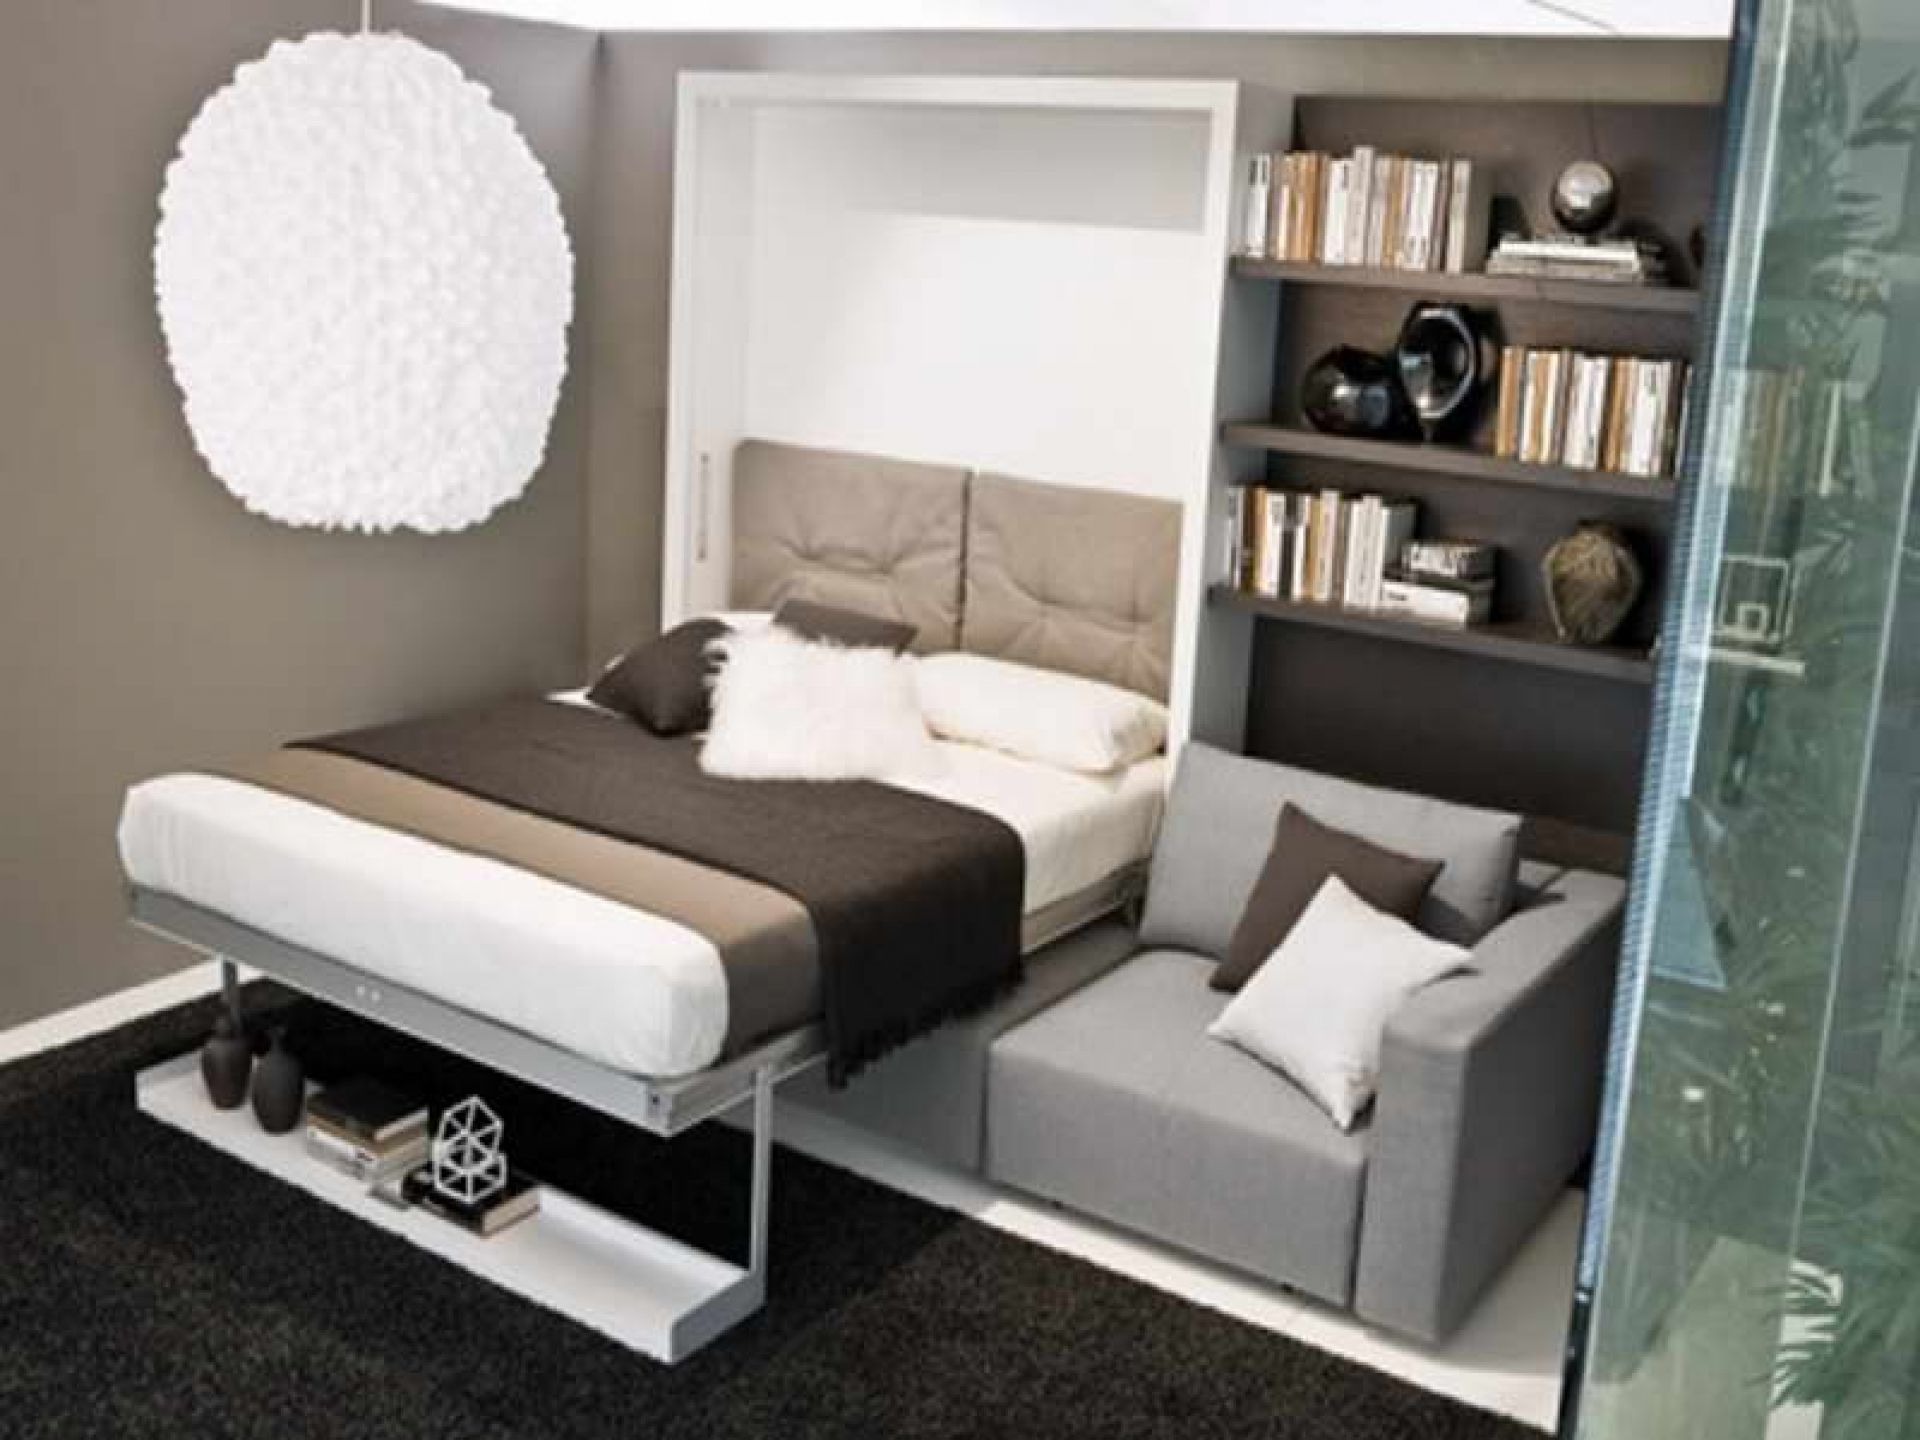 Bed bath exciting murphy bed ikea wall unit with desk and desk bed bath exciting murphy bed ikea wall unit with desk and desk amipublicfo Gallery